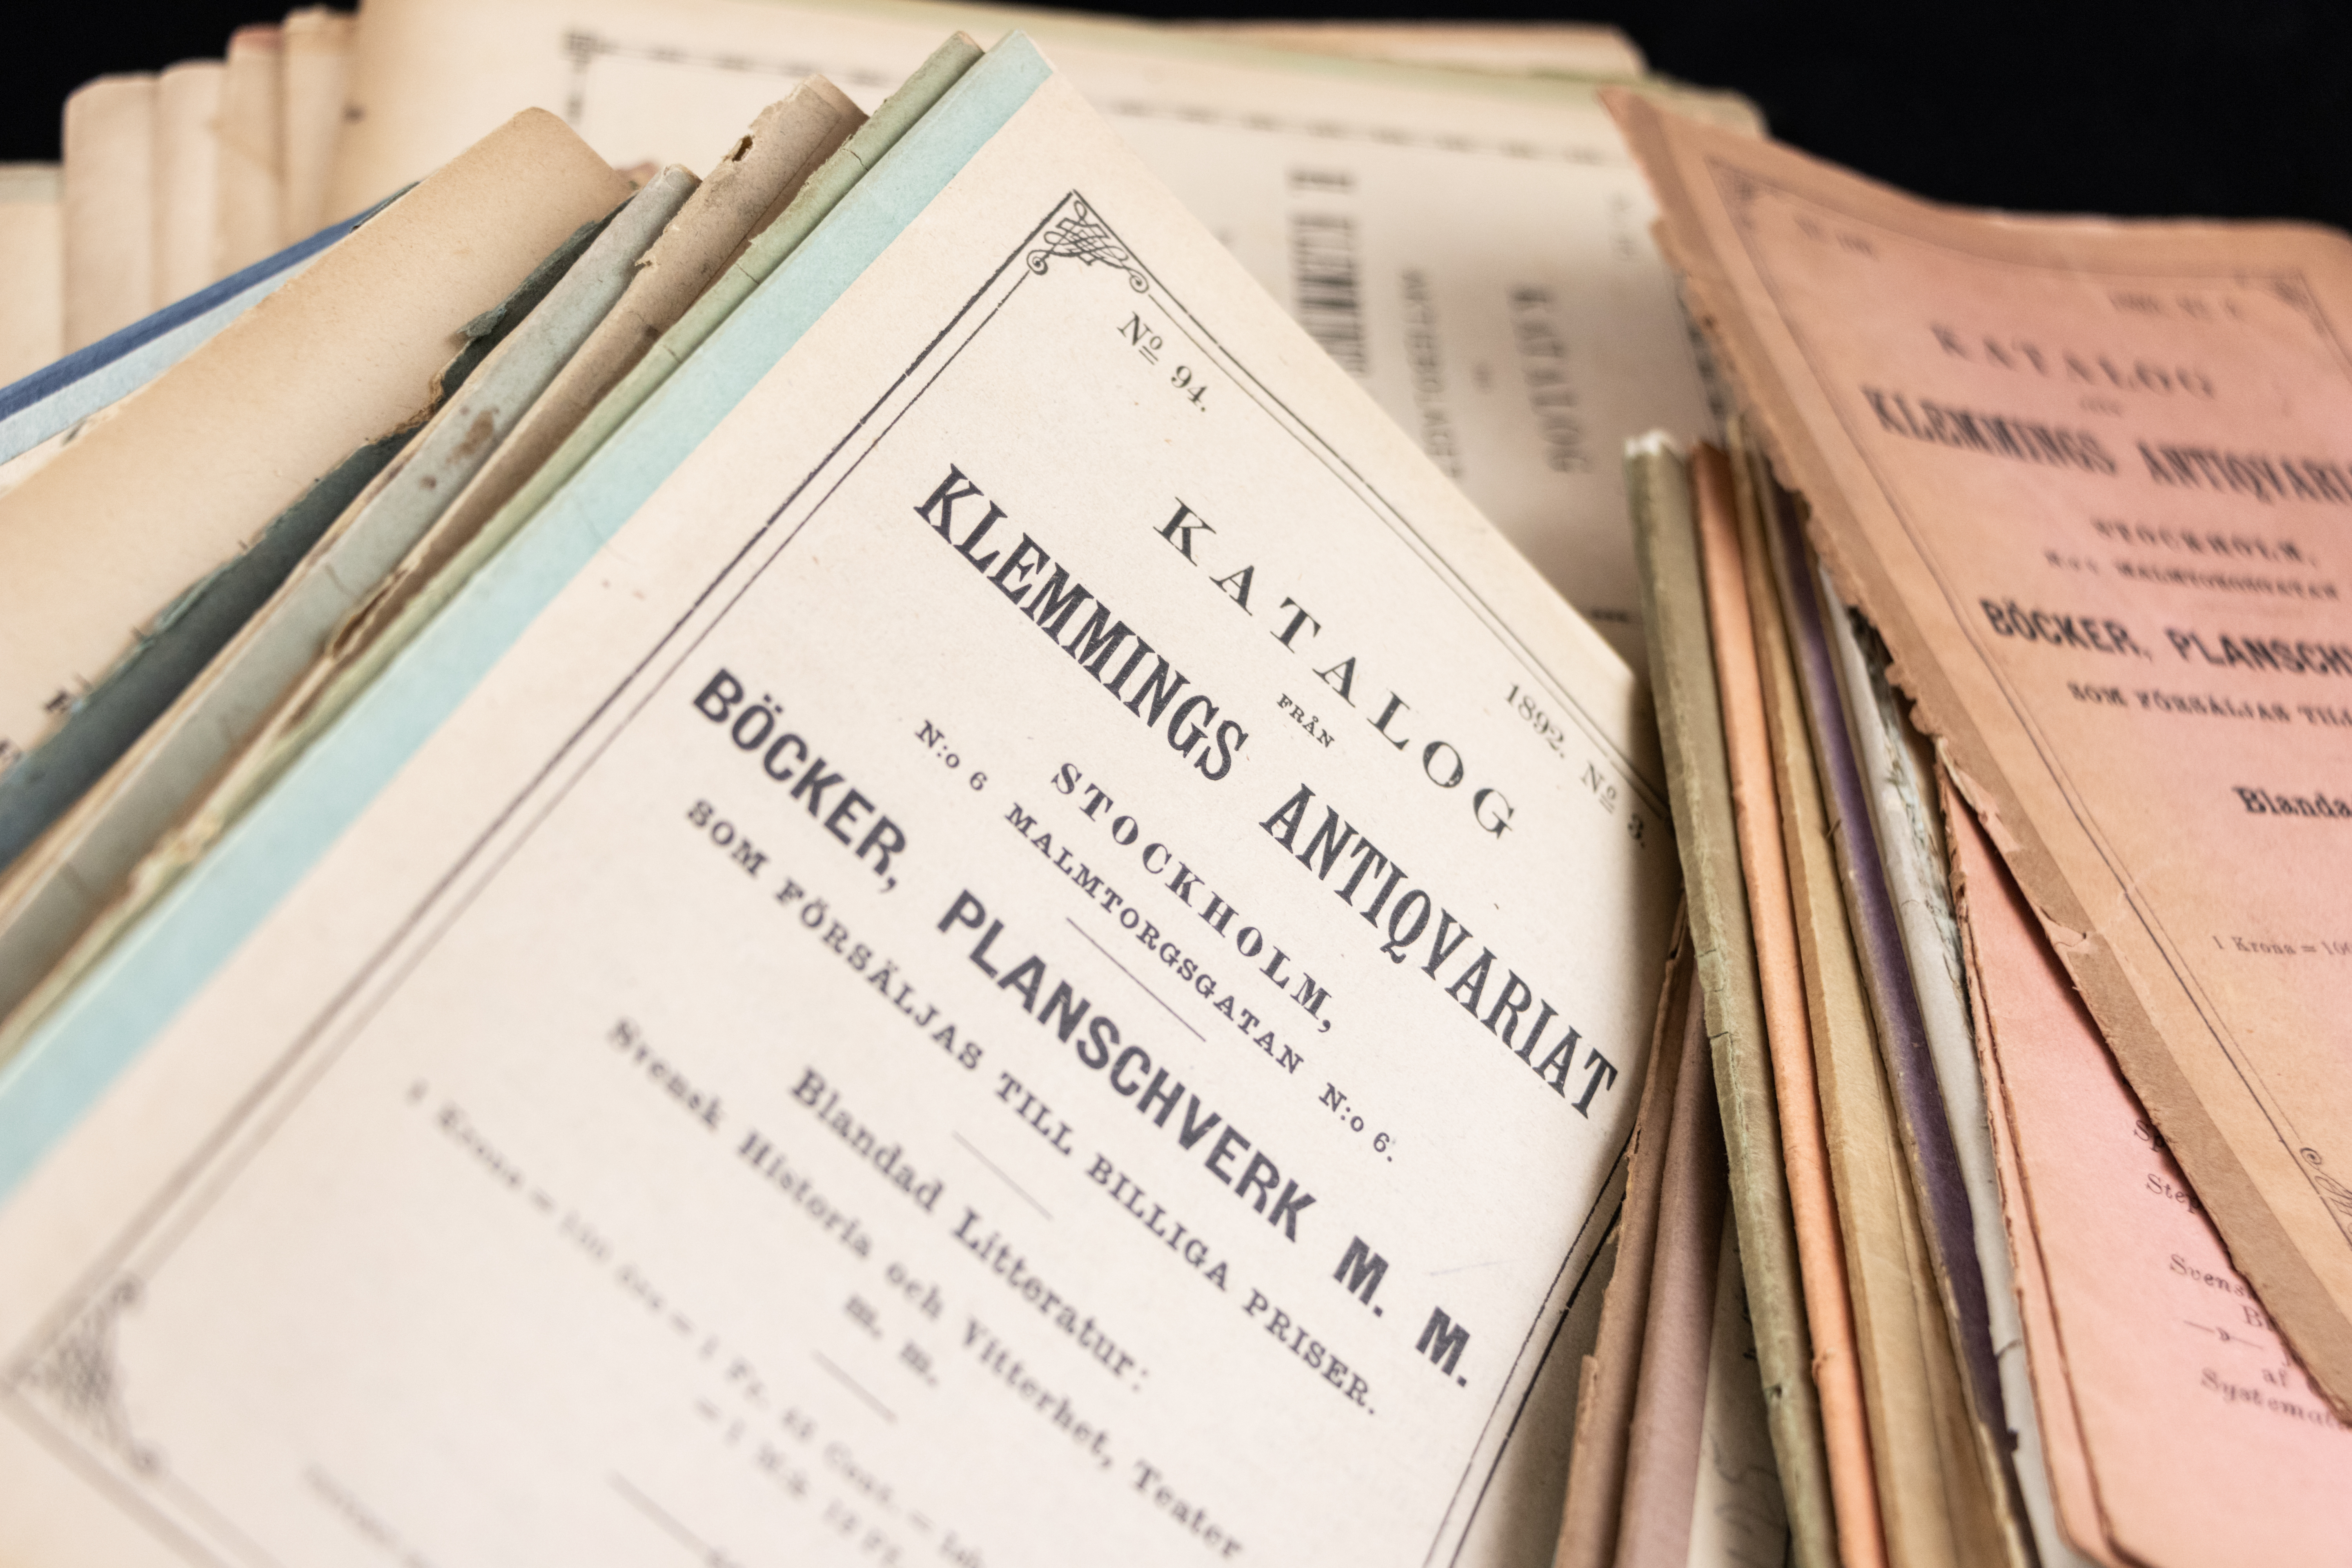 The Swedish Antiquarian Booksellers' Association's Catalogue Collection